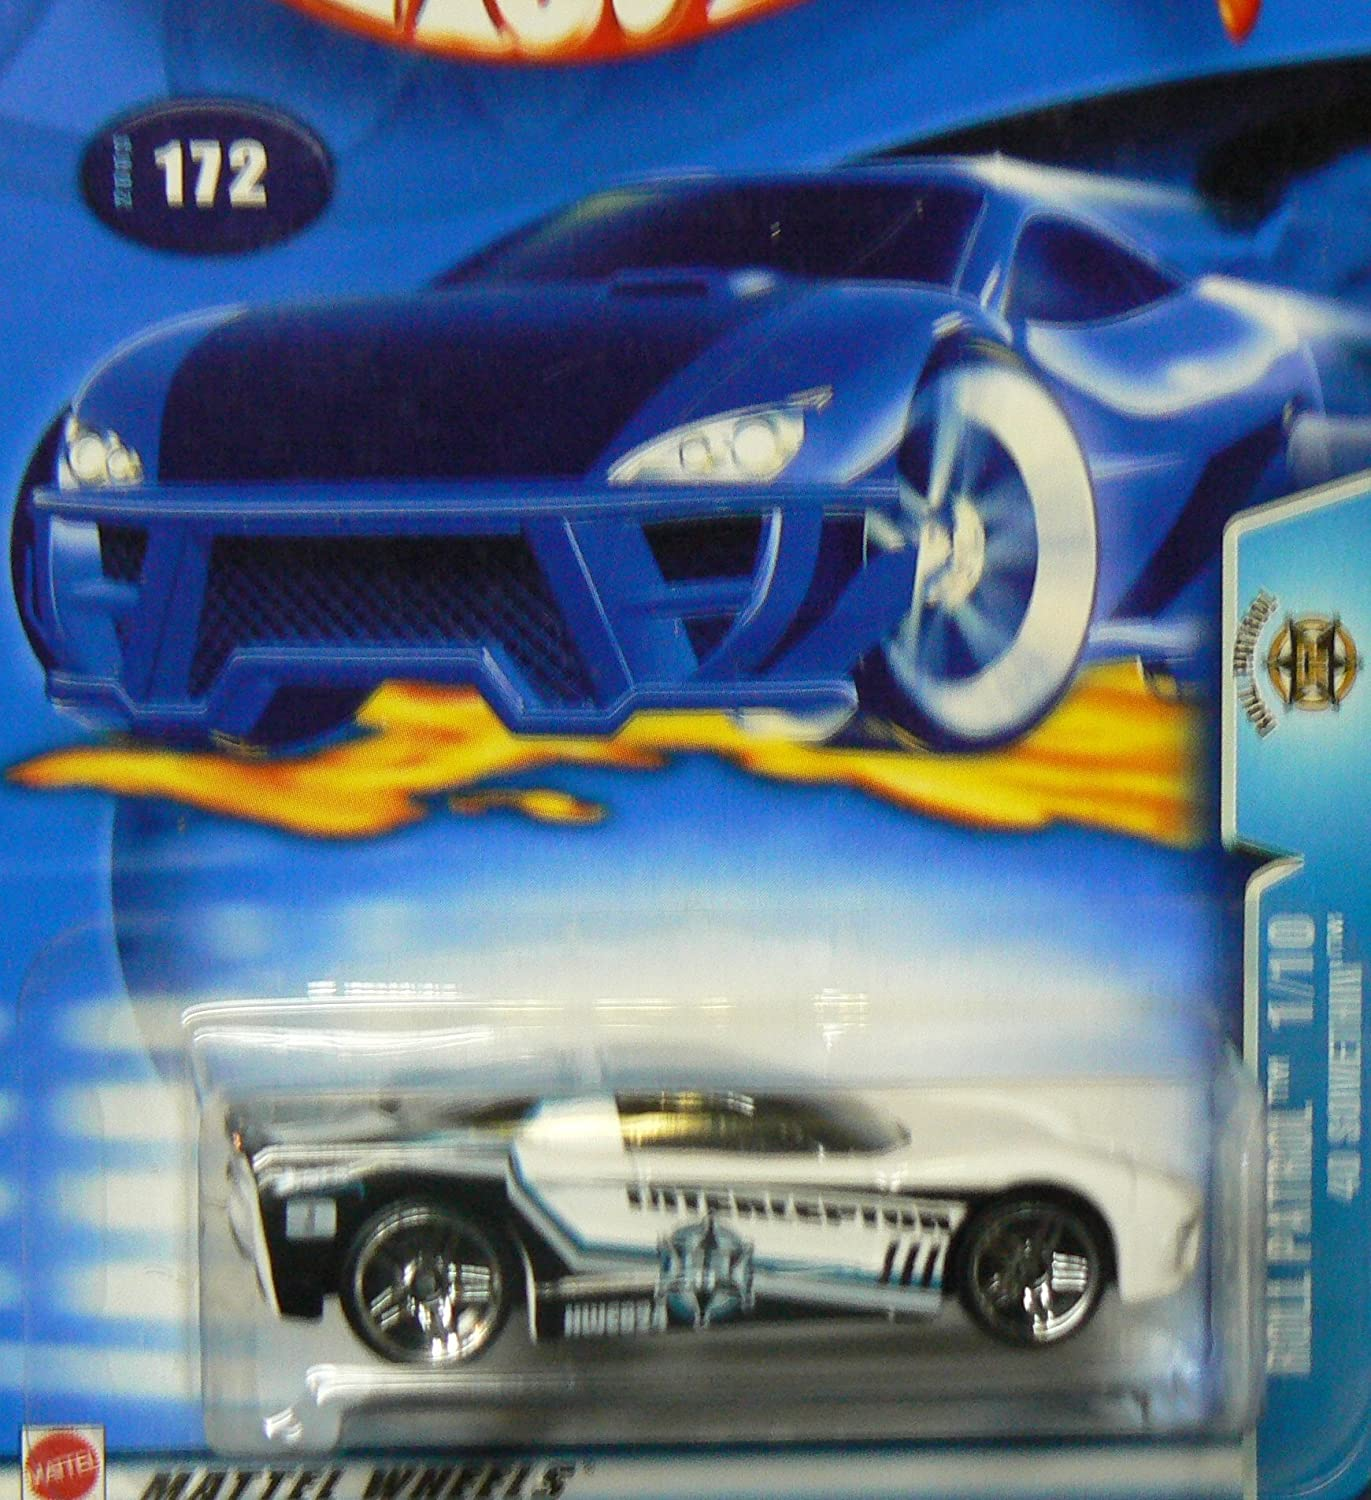 Roll Patrol #1 40 Somethin #2003-172 Collectible Collector Car Mattel Hot Wheels